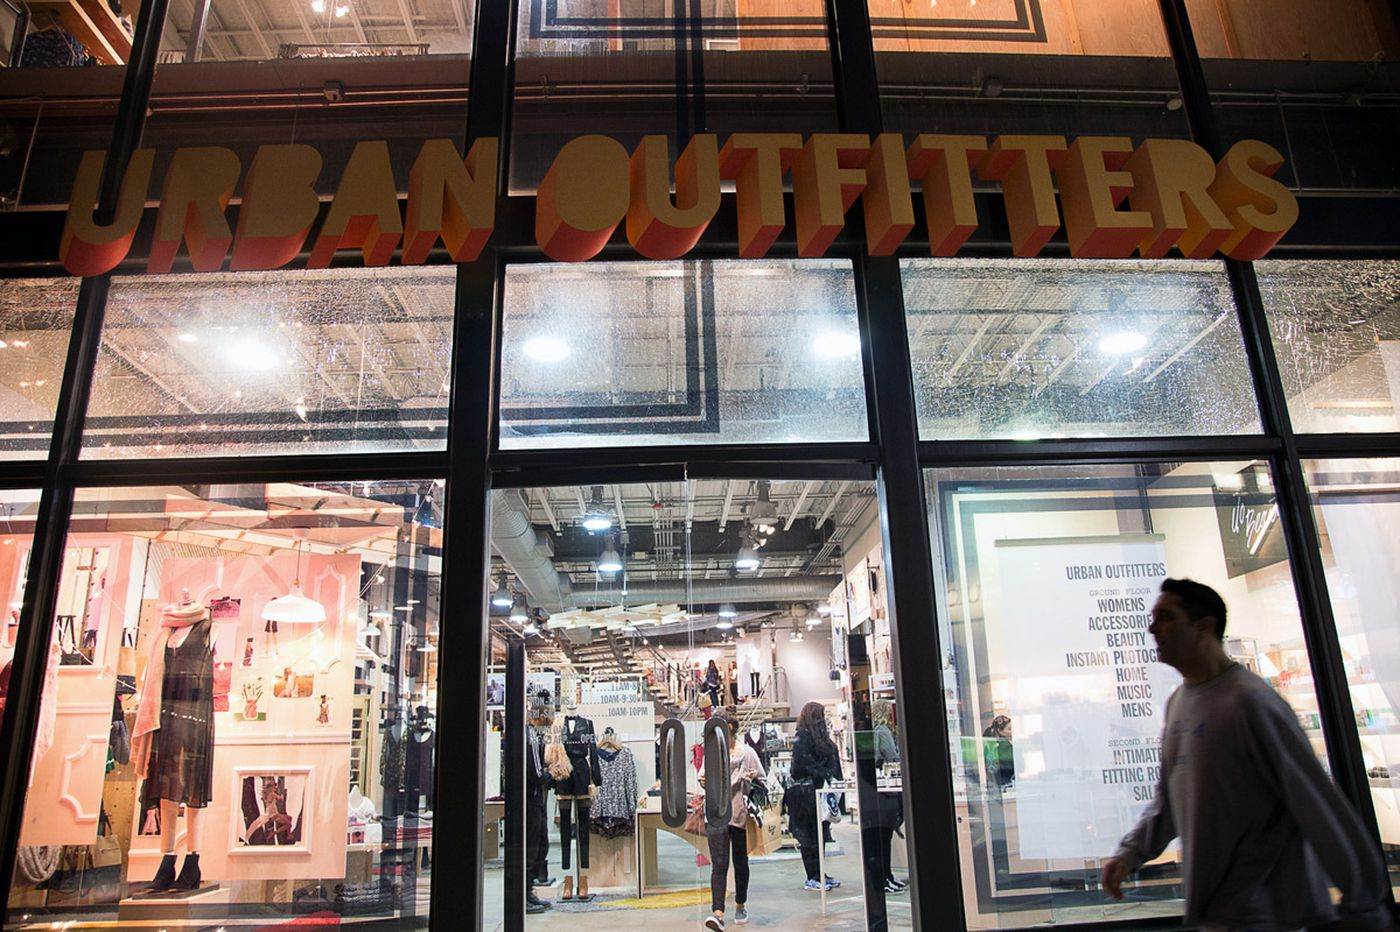 New Urban Outfitters subscription service will let you rent latest styles for $88 a month